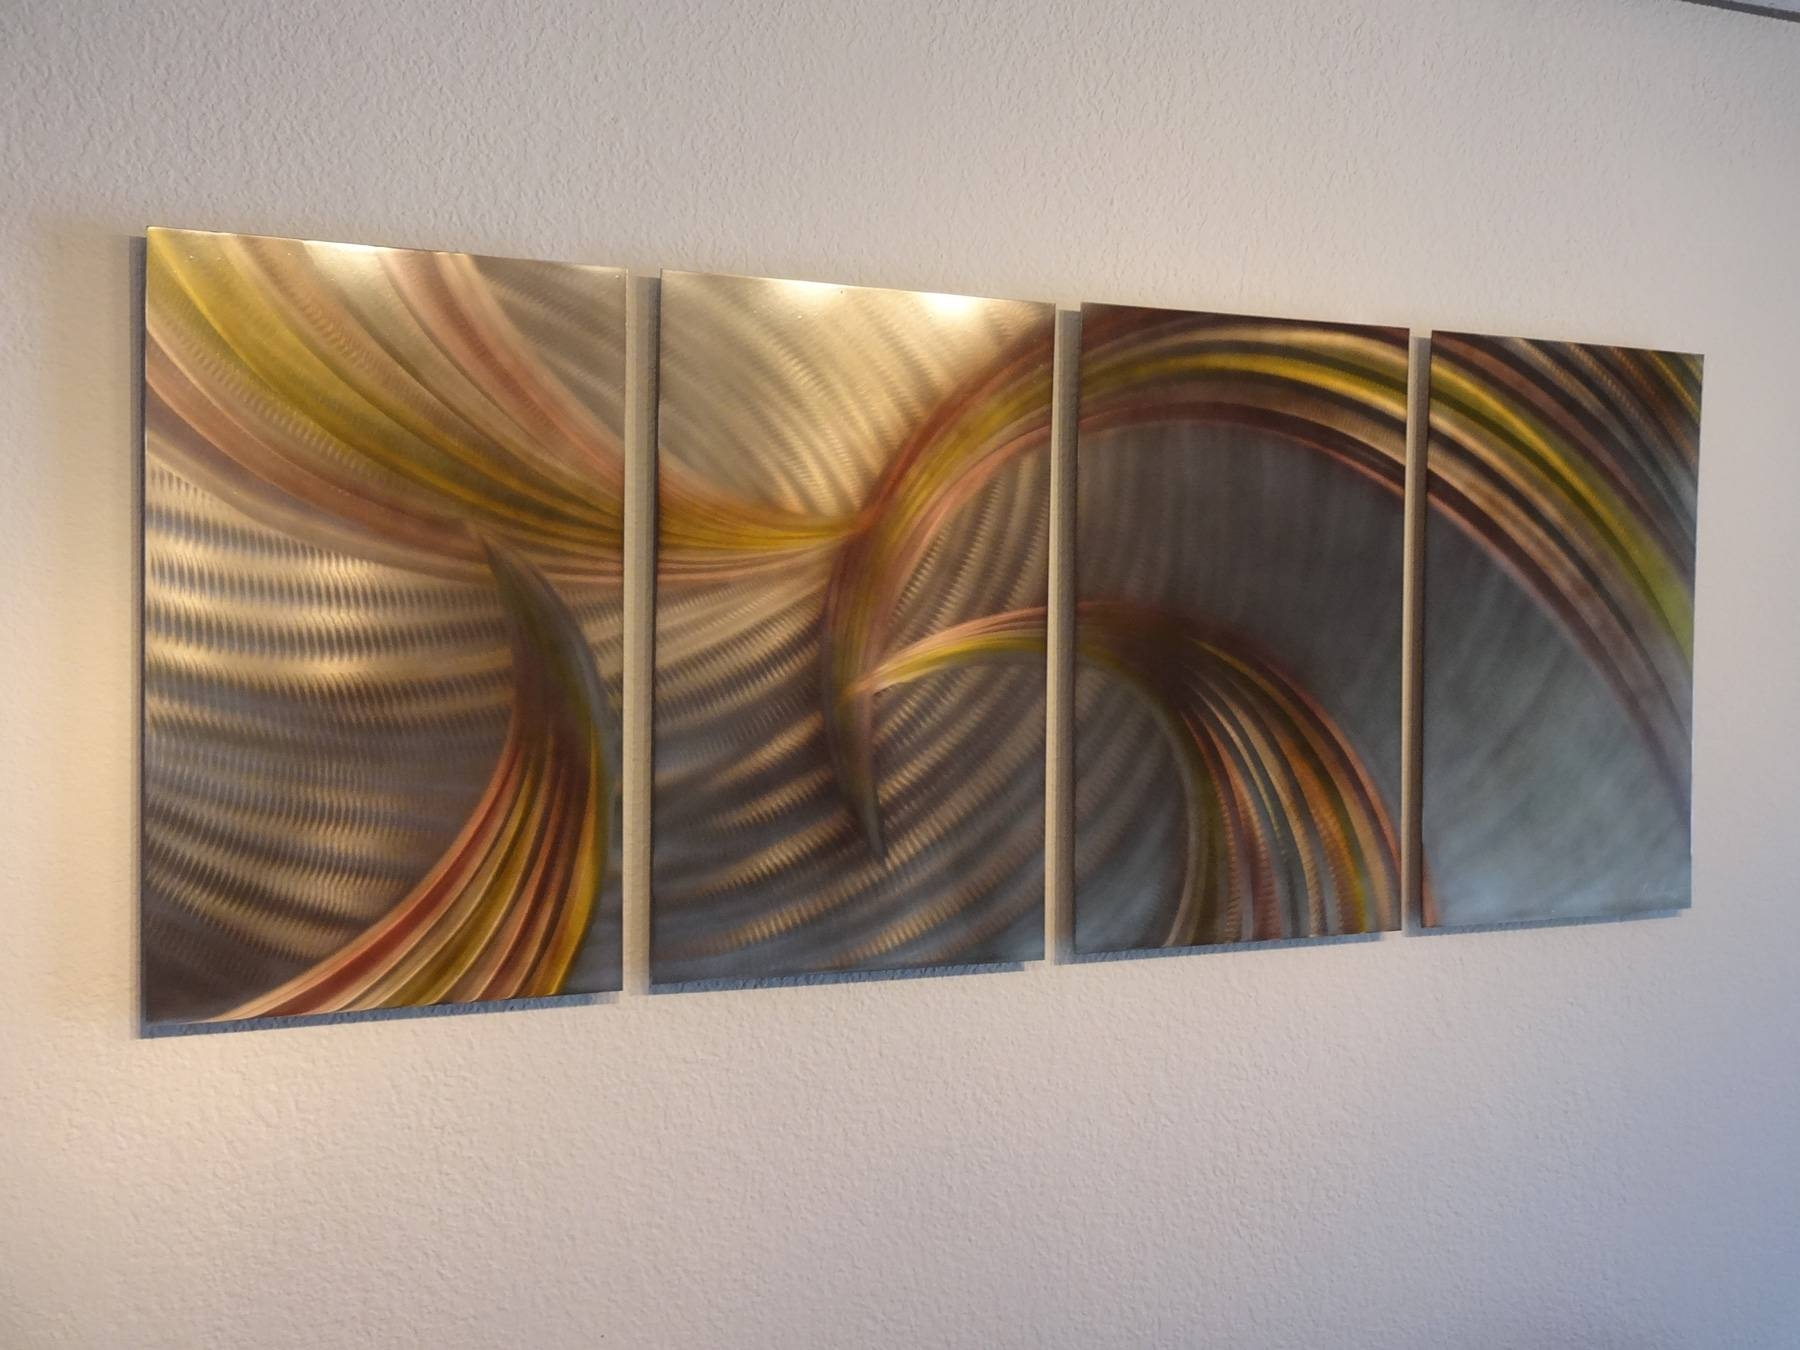 Tempest Bronze – Abstract Metal Wall Art Contemporary Modern Decor With Regard To Most Recently Released Bronze Metal Wall Art (View 6 of 20)